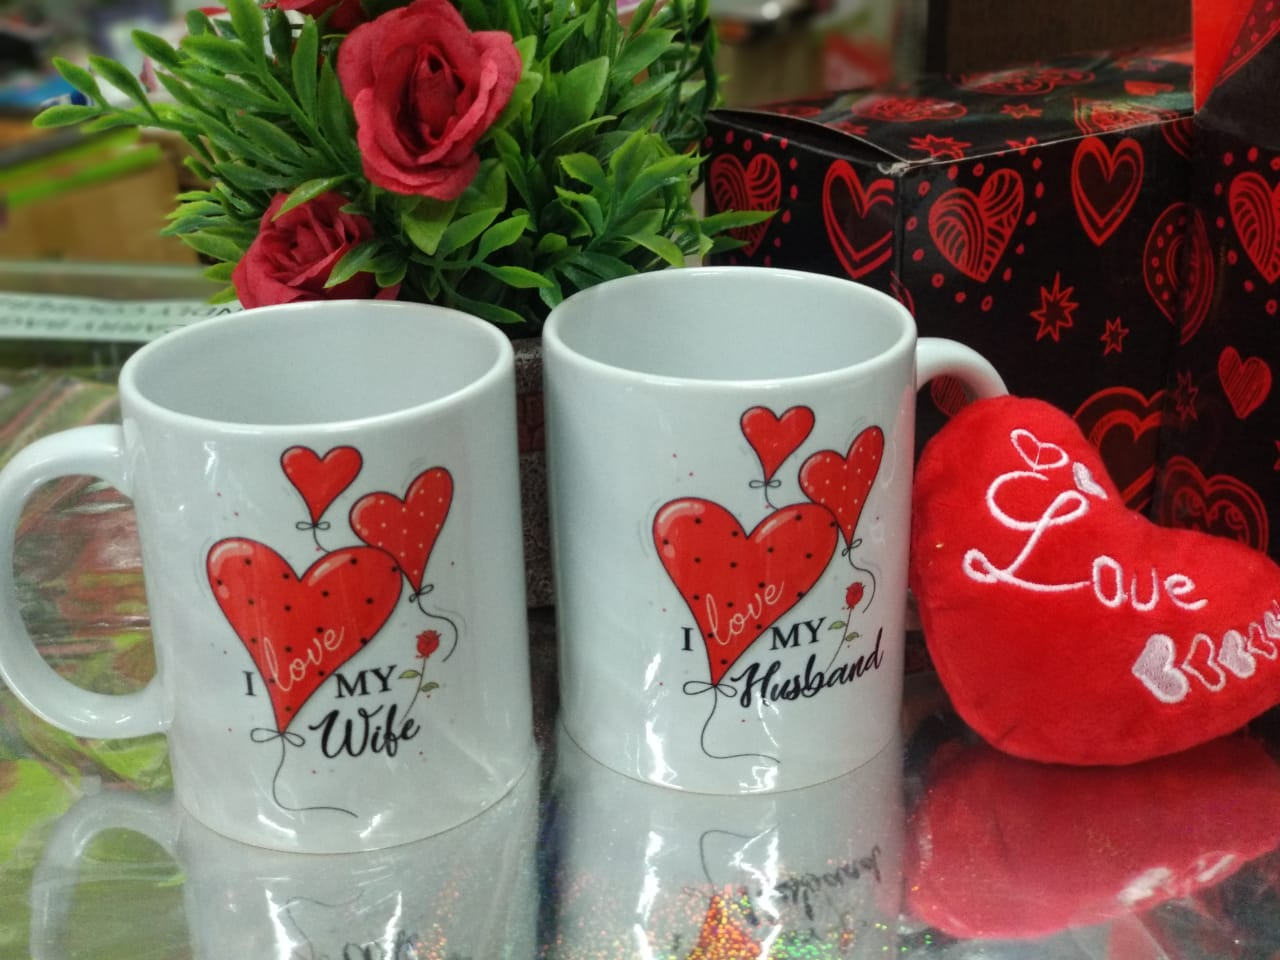 Couple mugs for wife & Husband with heart key chain - NY7